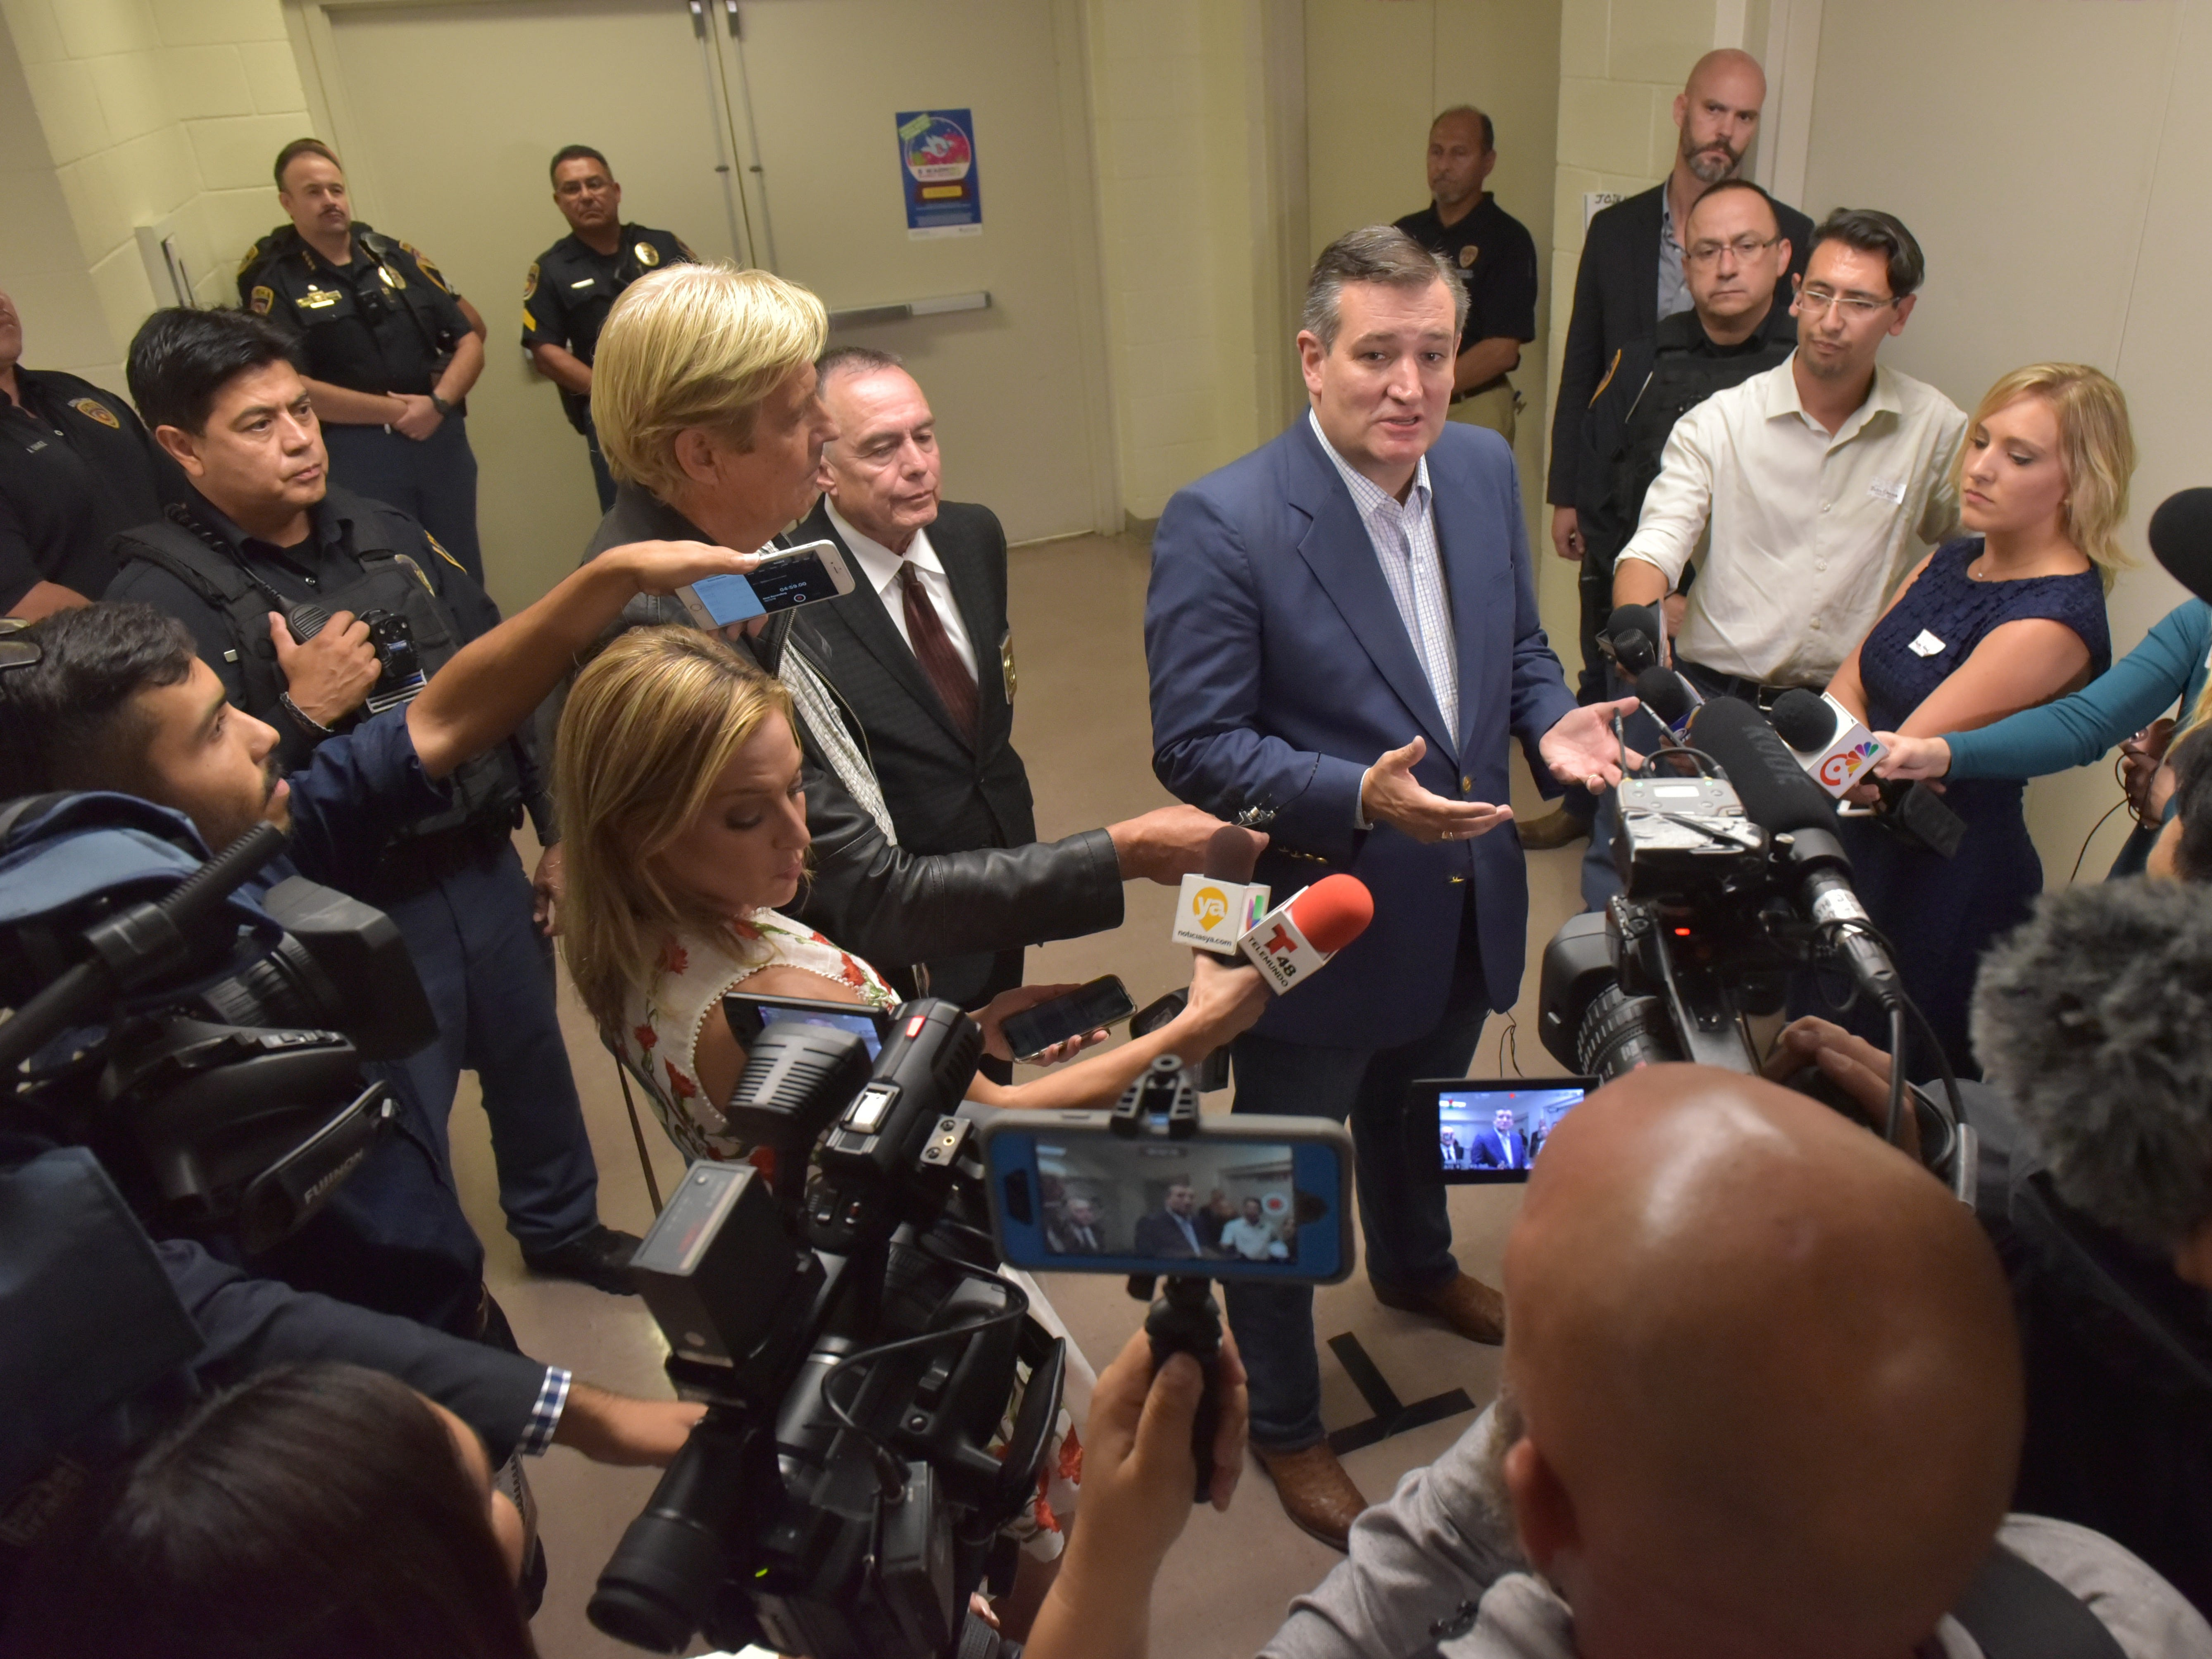 Texas Senator Ted Cruz meets with members of the media before addressing the crowd on hand fired up as he made a stop in El Paso Saturday night at Franklin High School on El Paso's westside.